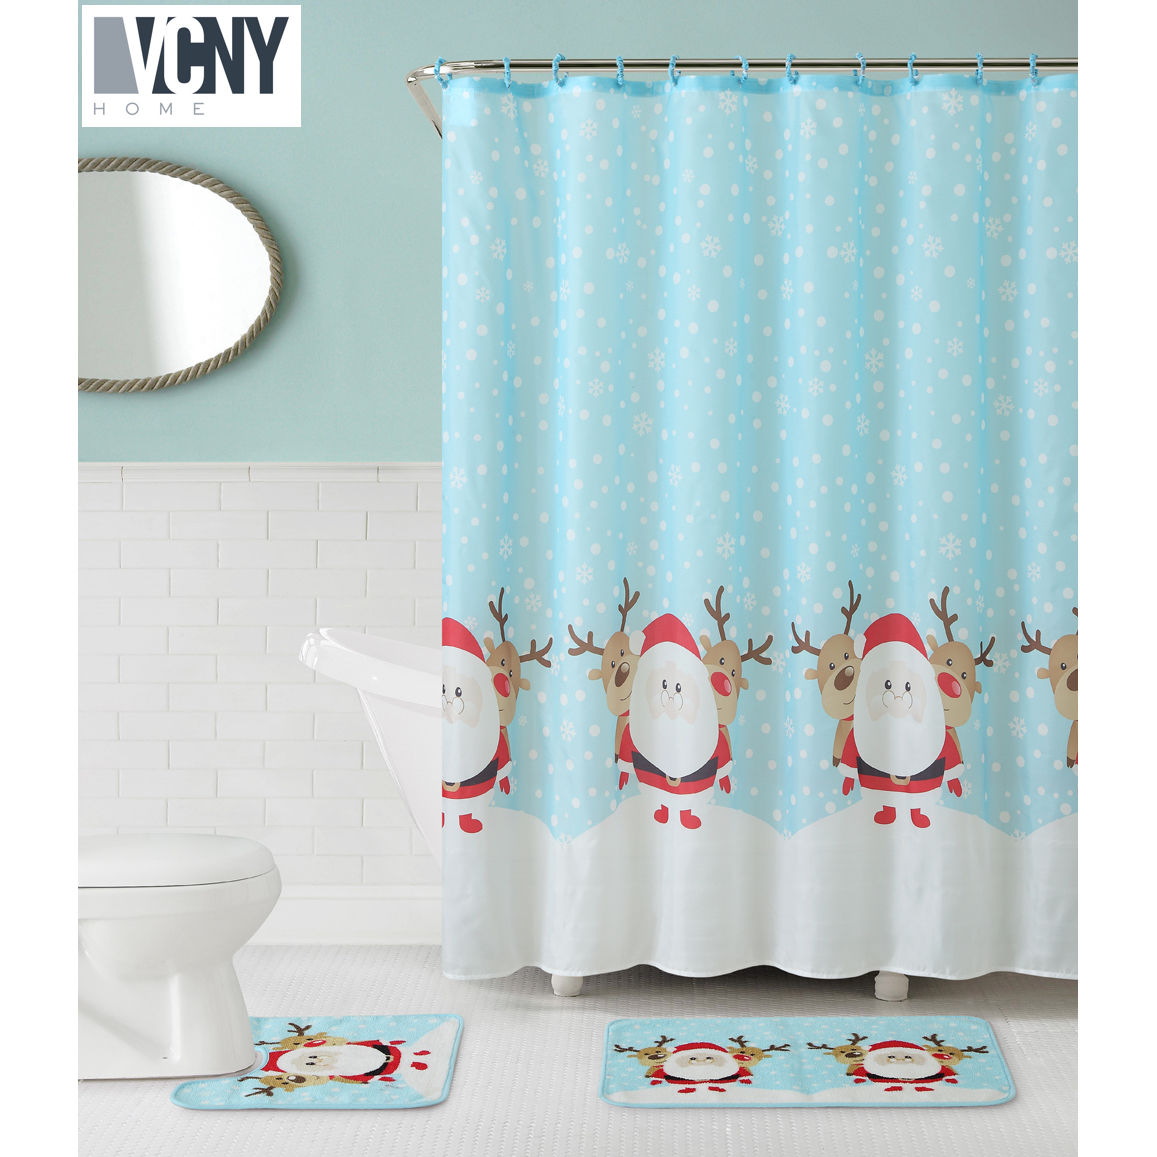 VCNY Holiday Theme Christmas Santa & Reindeer 15-piece Shower Curtain & Bath Set